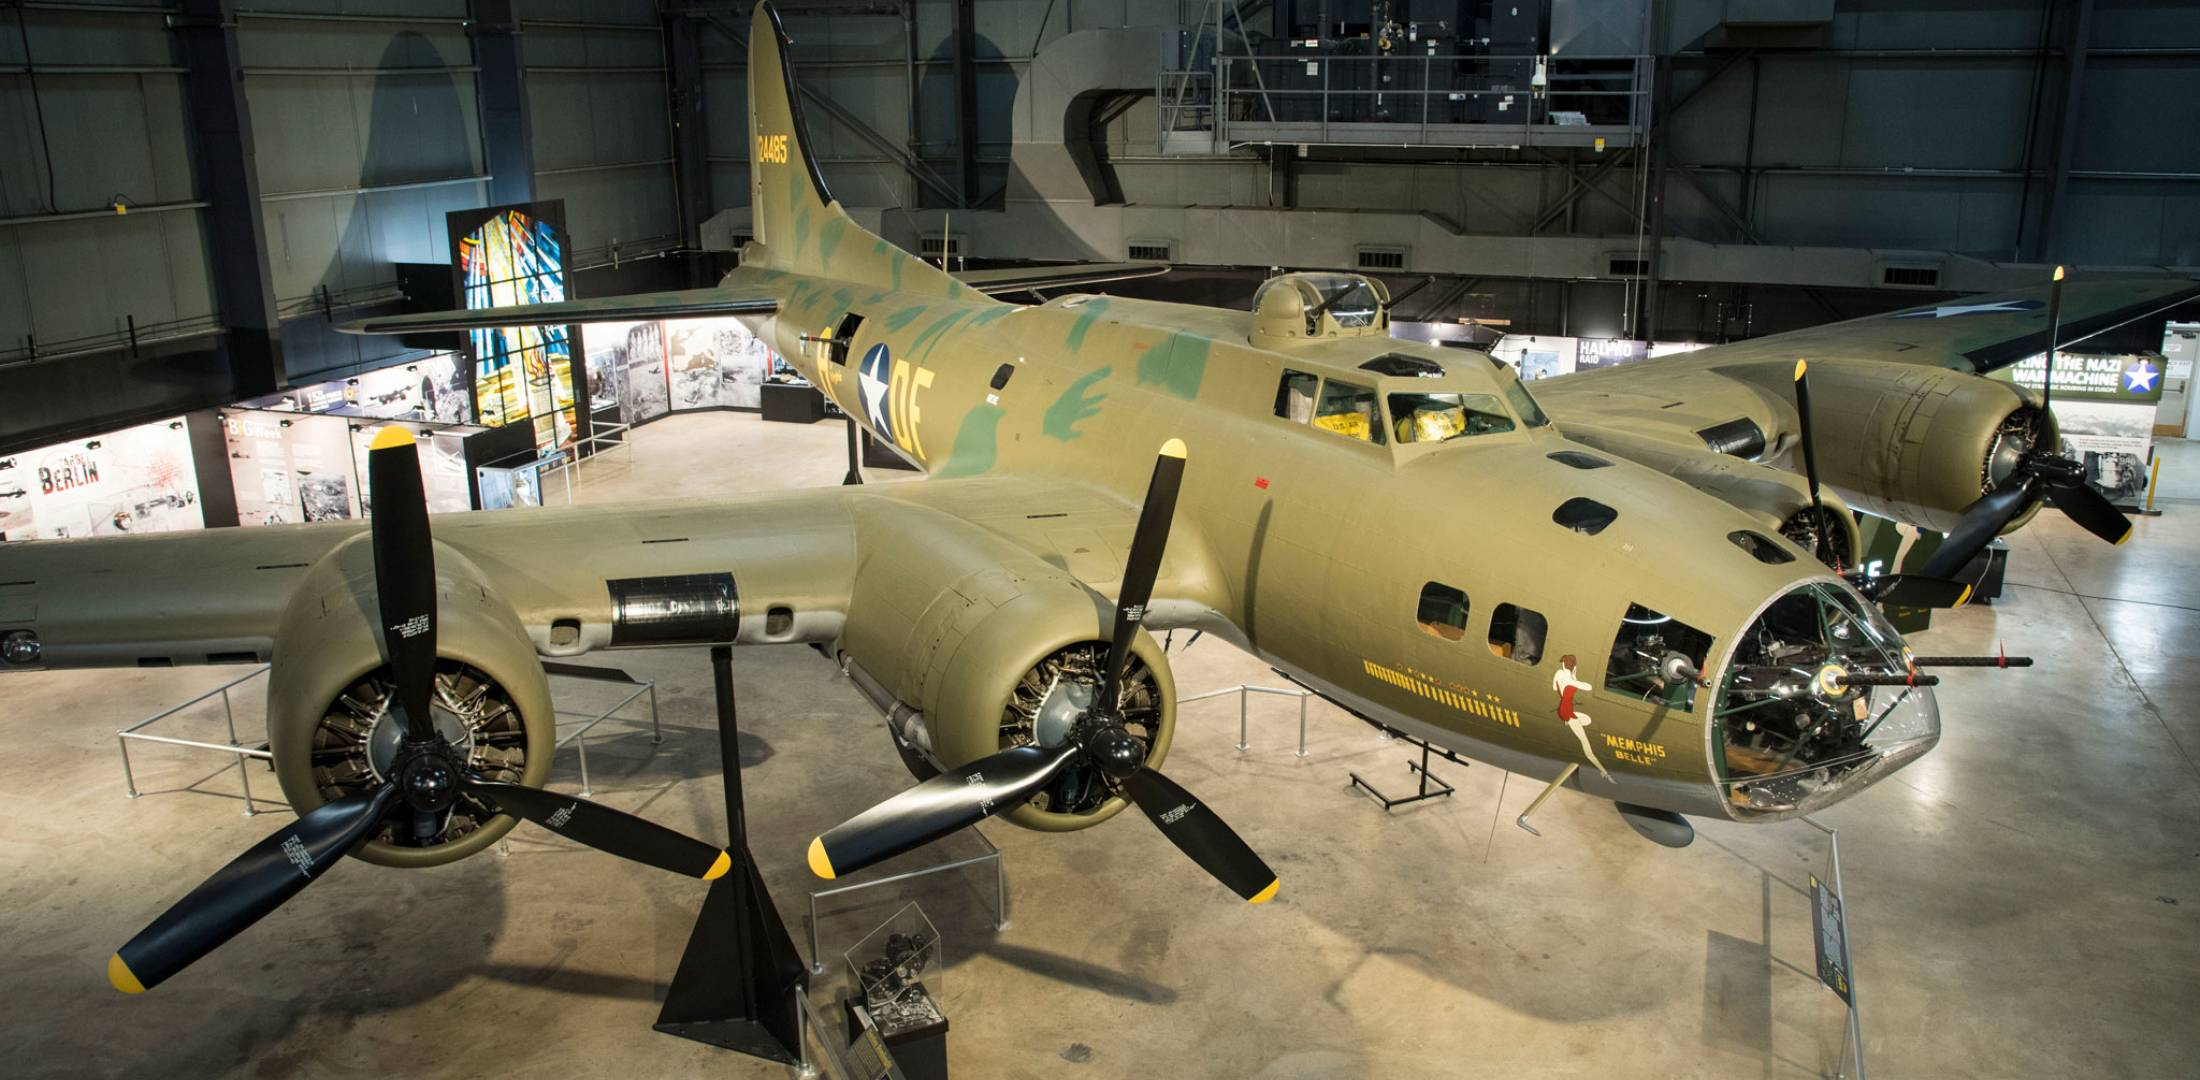 National Air Force Museum >> Air Force Museum Unveils Restored Memphis Belle Aerospace News